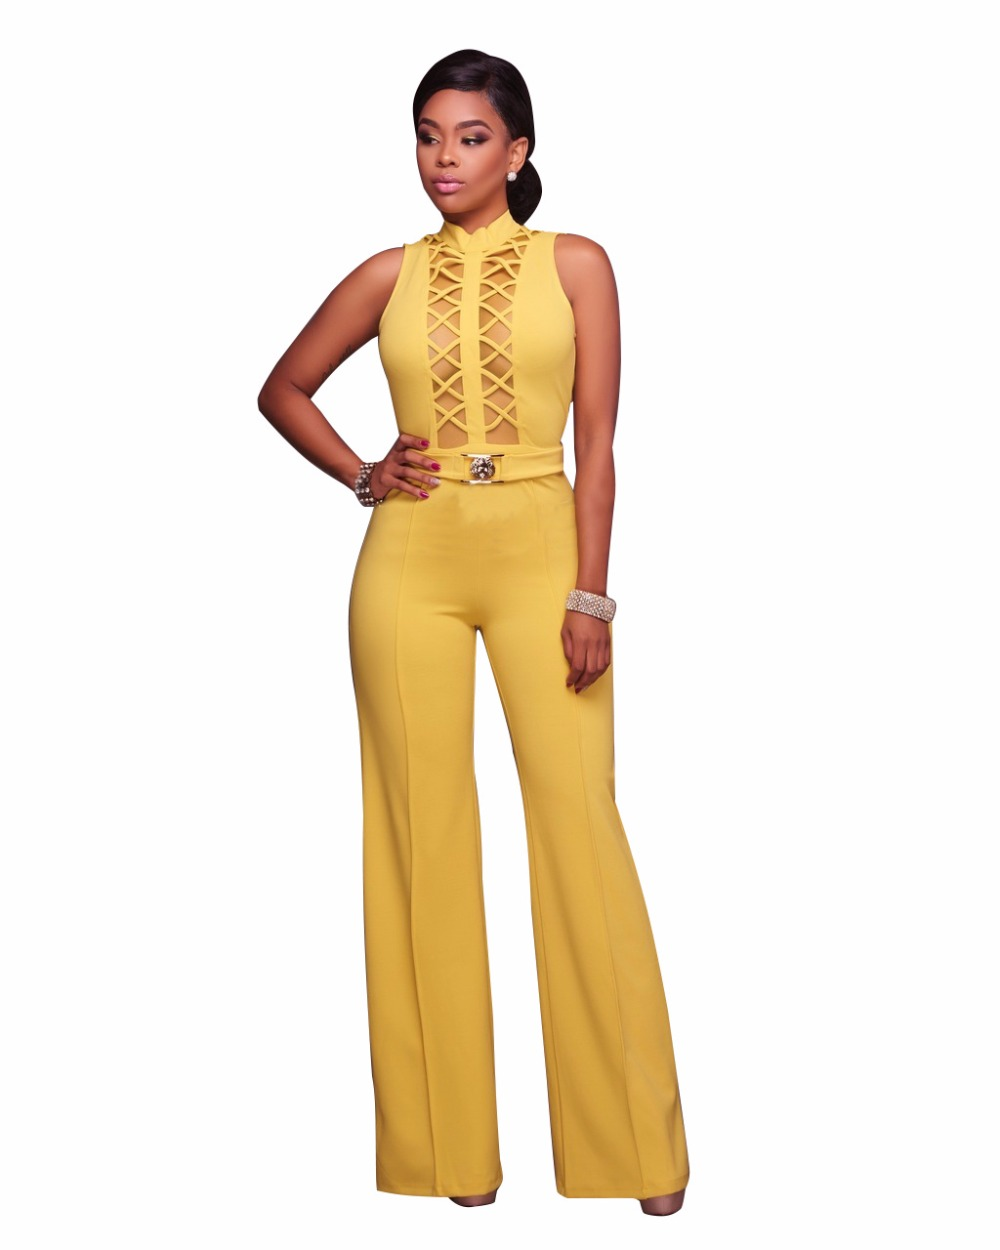 752b1535ec2f Summer Jumpsuit Hollow Out Sexy Wide Leg Rompers Bodycon Body Macacao  Feminino Thank Sleeveless Full Length Women Jumpsuit Femme-in Jumpsuits  from Women s ...